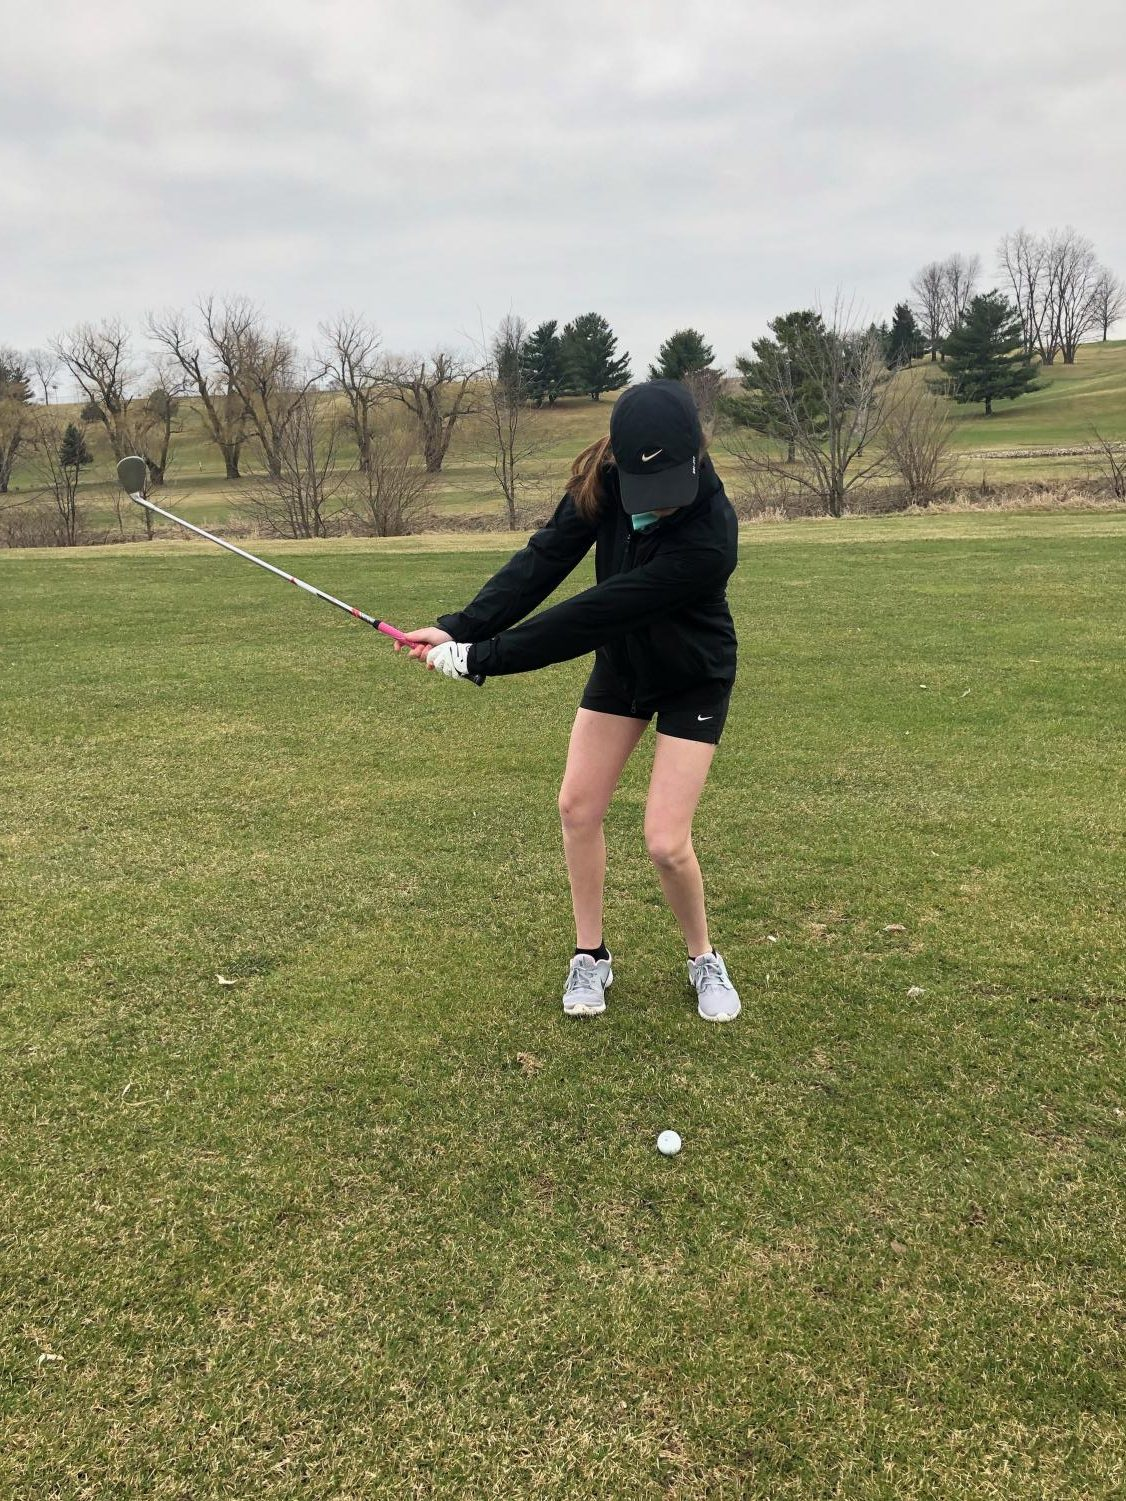 Erika Holmberg, number one player on the PV Girls' Golf team, swings at the ball on Hole 22 at Hidden Hills Golf Course.